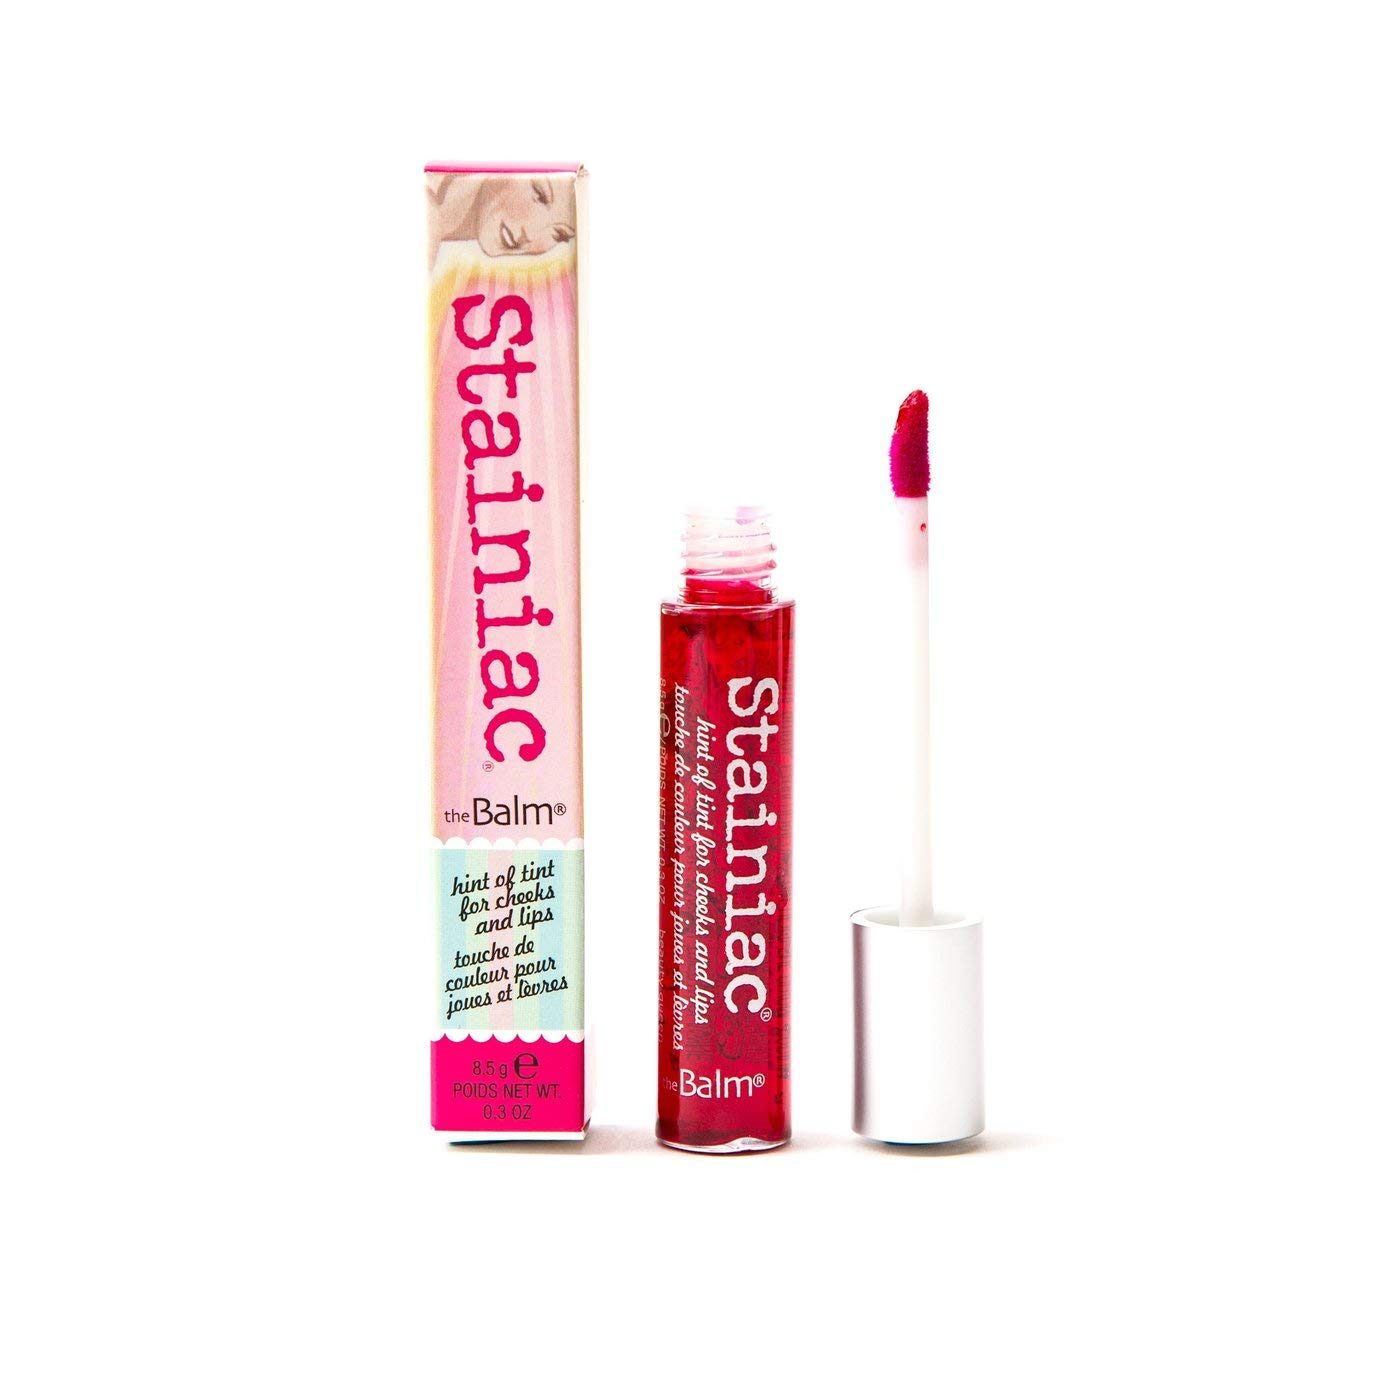 theBalm Stainiac Lip & Cheek Stain, Aloe-Infused Formula, Multi-Use, Buildable, Pigmented by theBalm